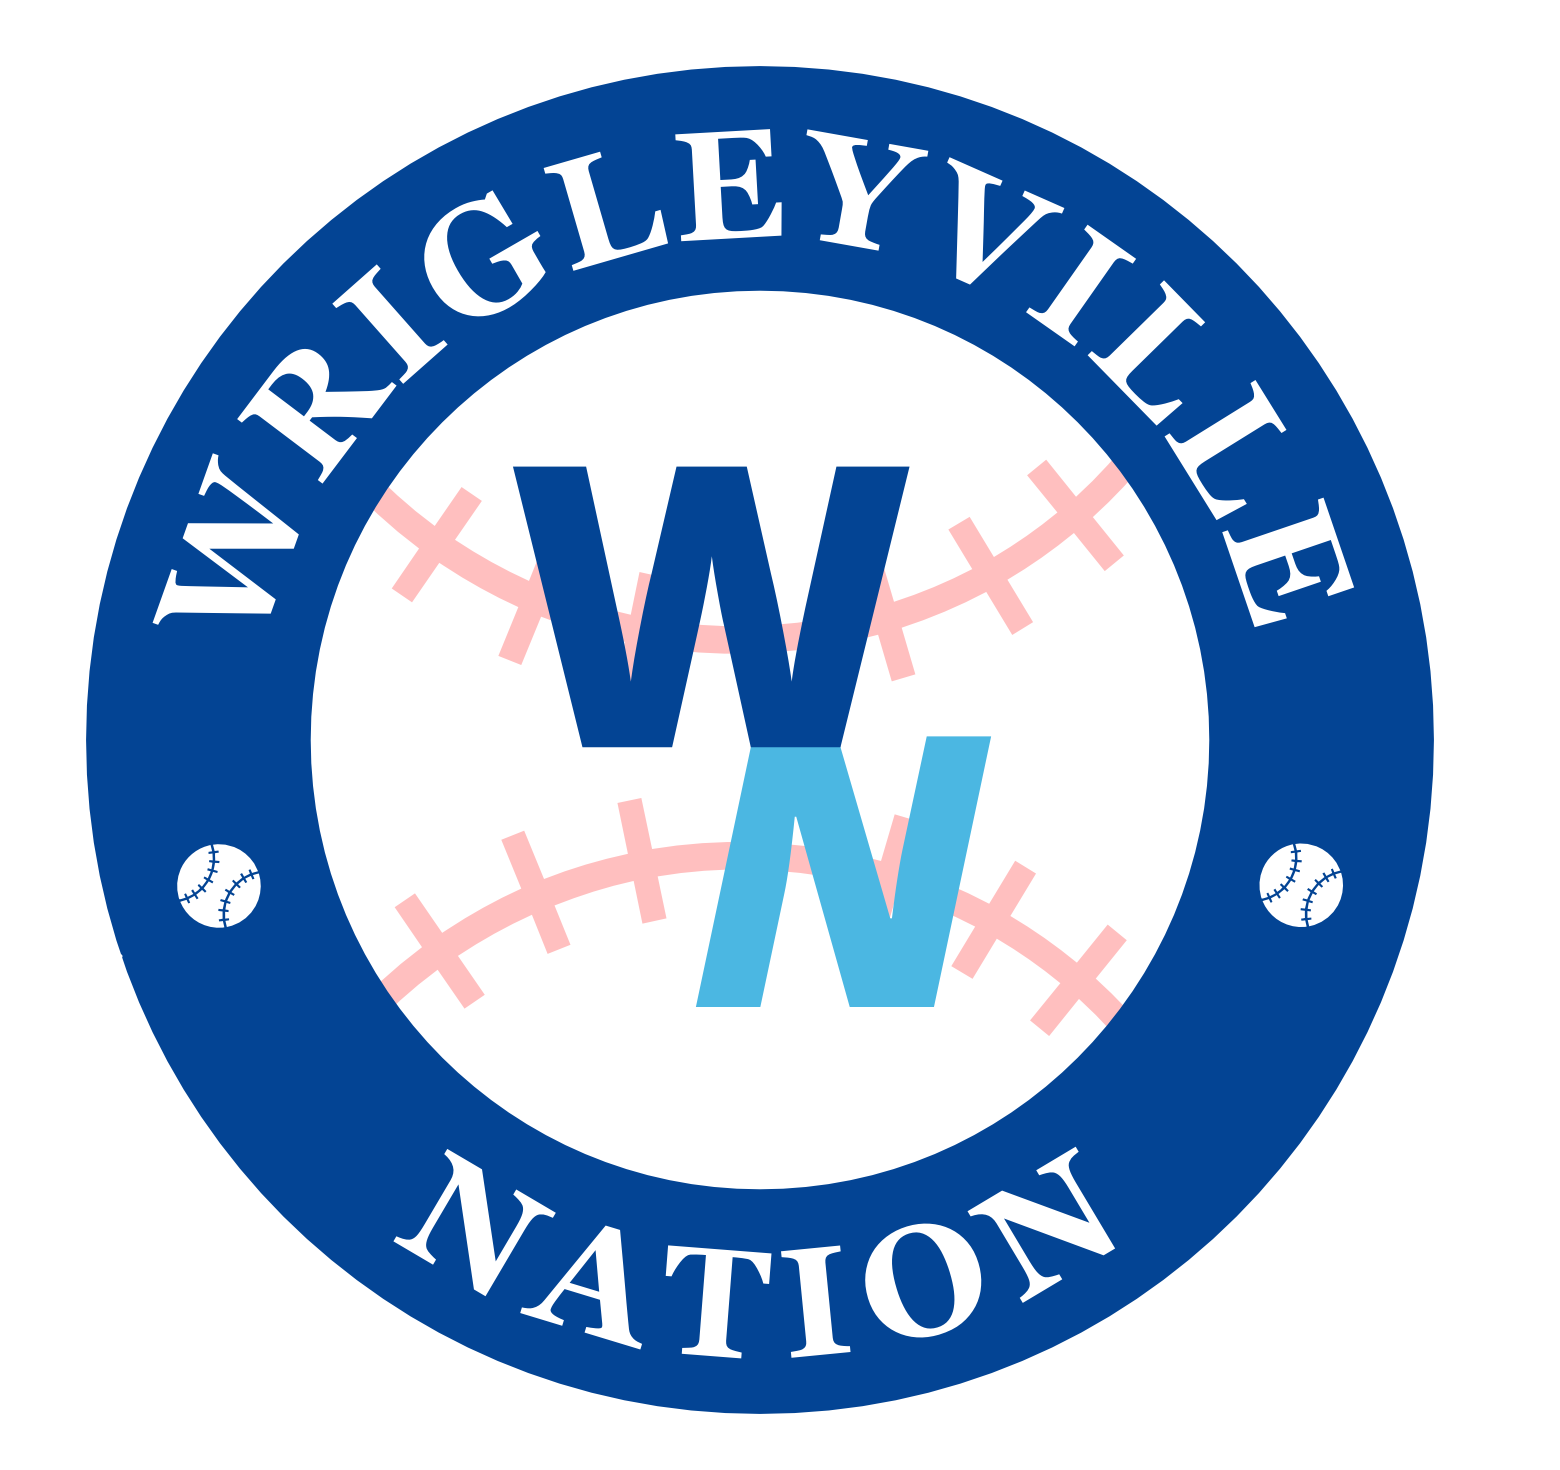 Wrigleyville Nation Ep 269 - Guest: Jared Wyllys, Cubs End of Season Recap, Offseason Preview, & More show art